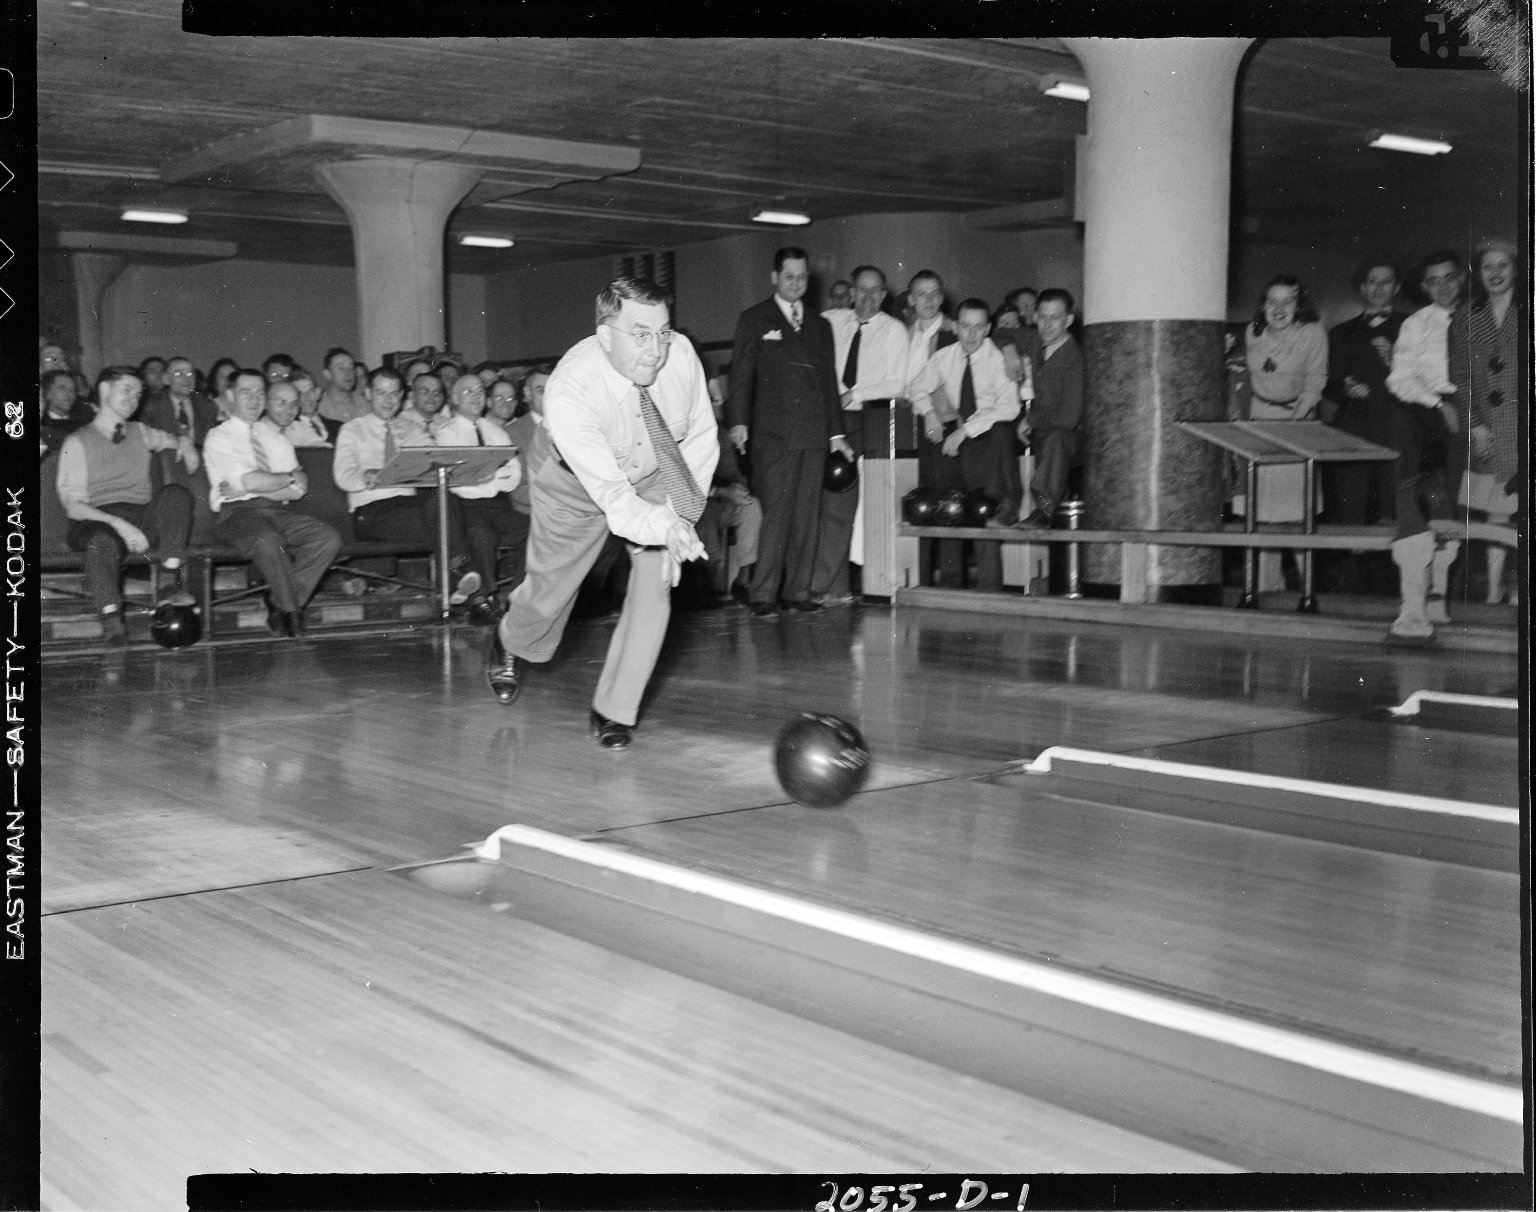 Sutherland Paper Company bowling tournament